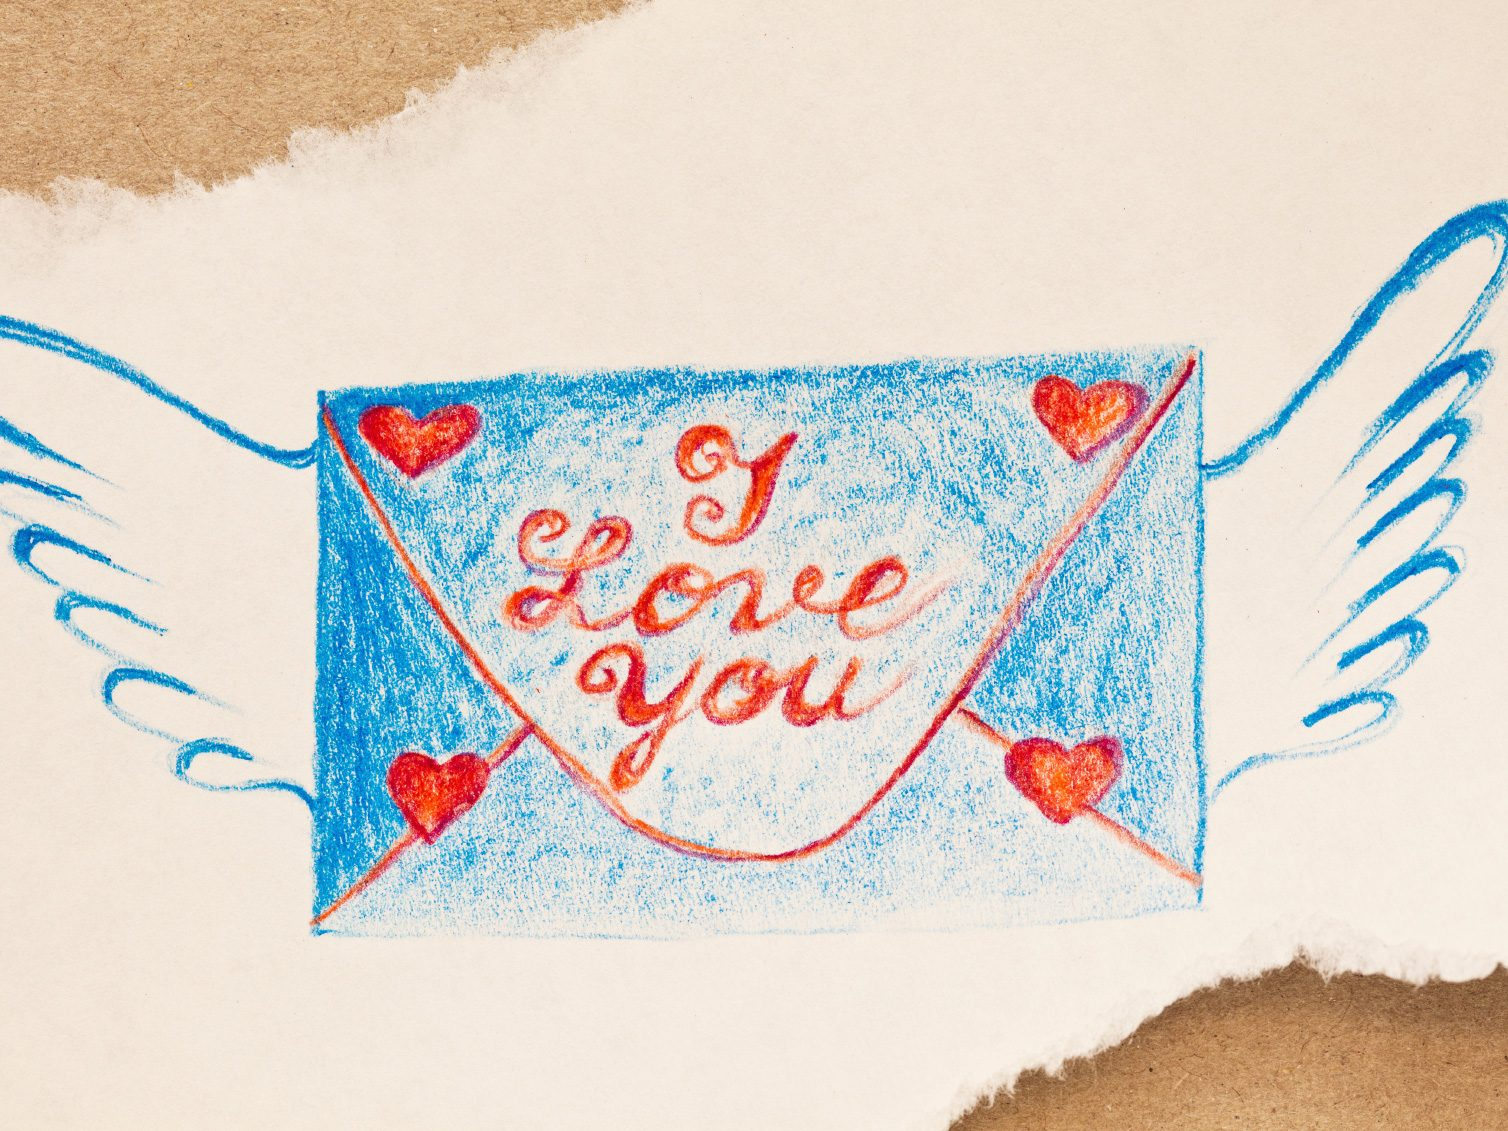 Leave a Love Note